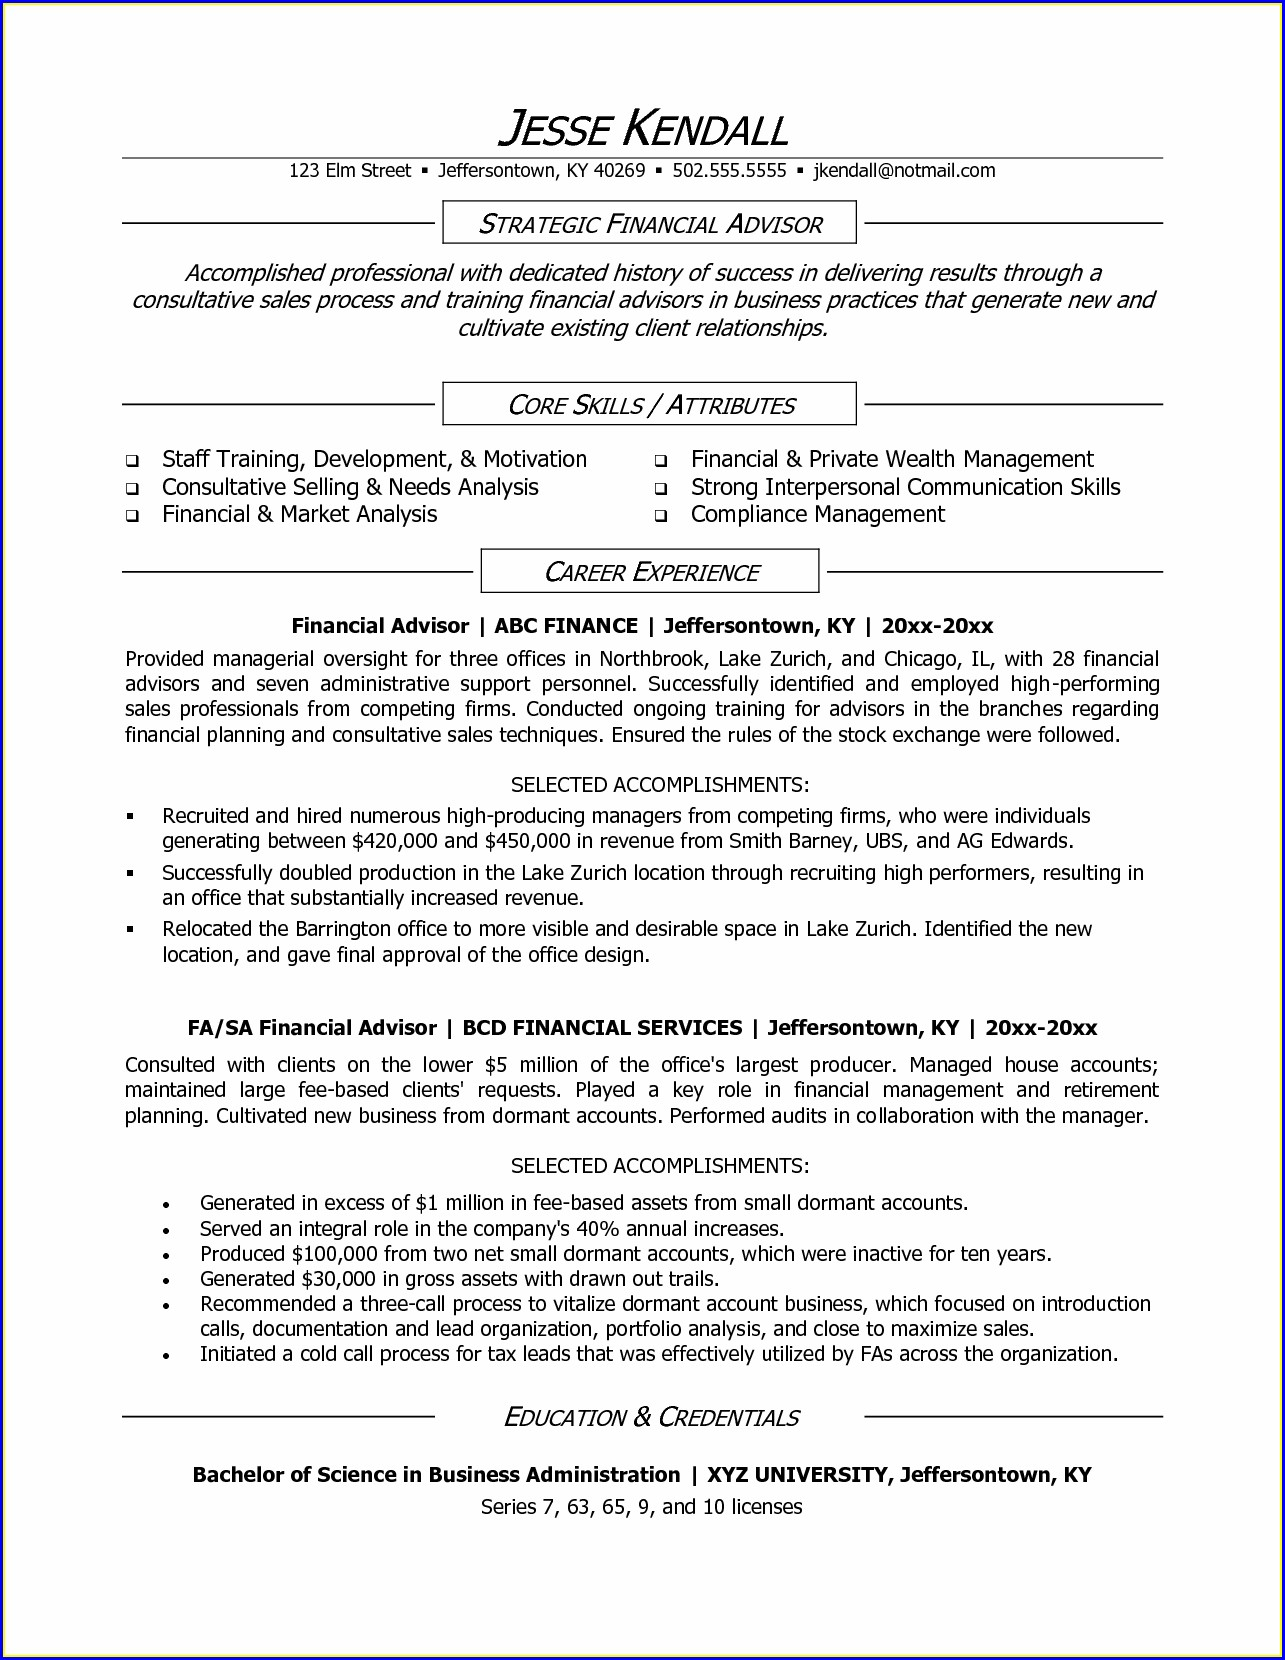 Certified Financial Planner Resume Sample